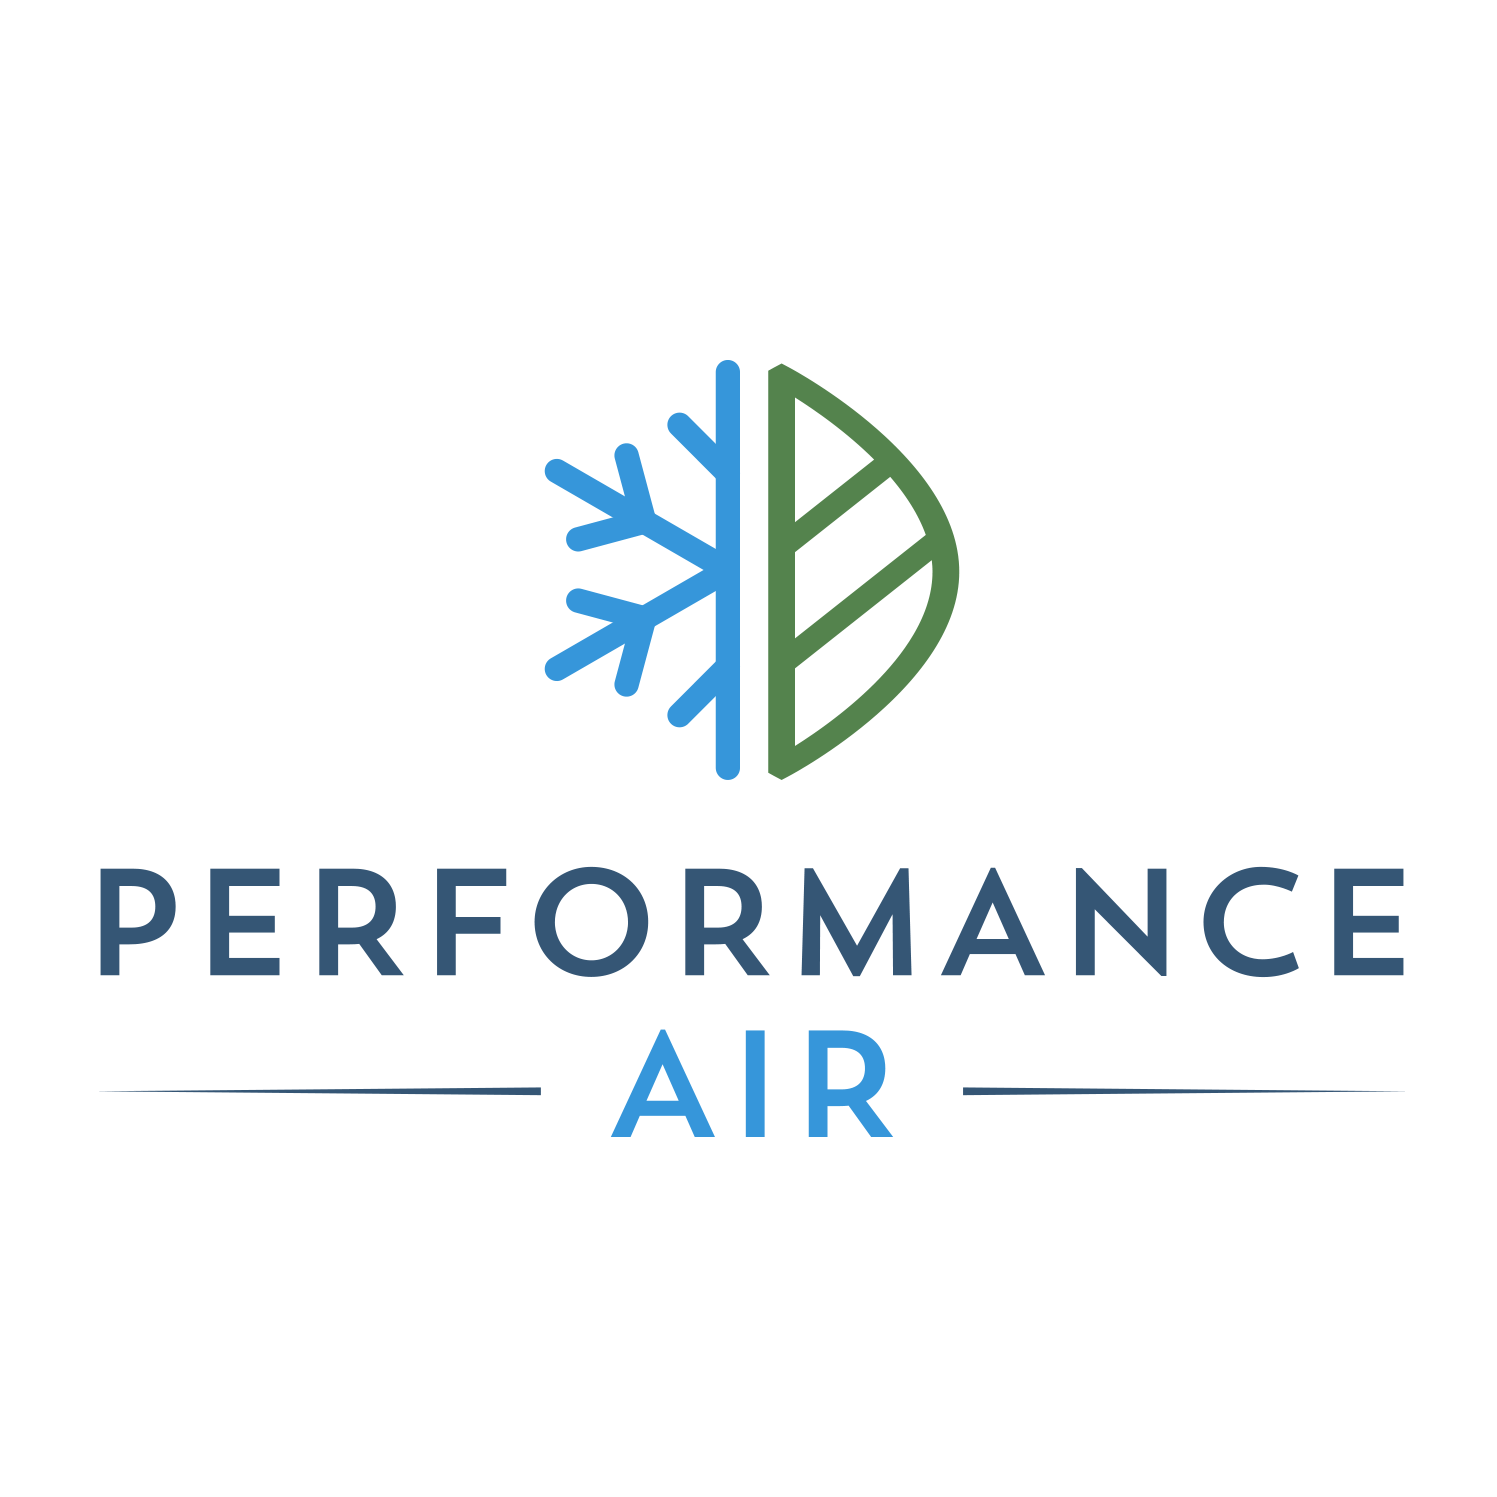 Performance Air Logo Design